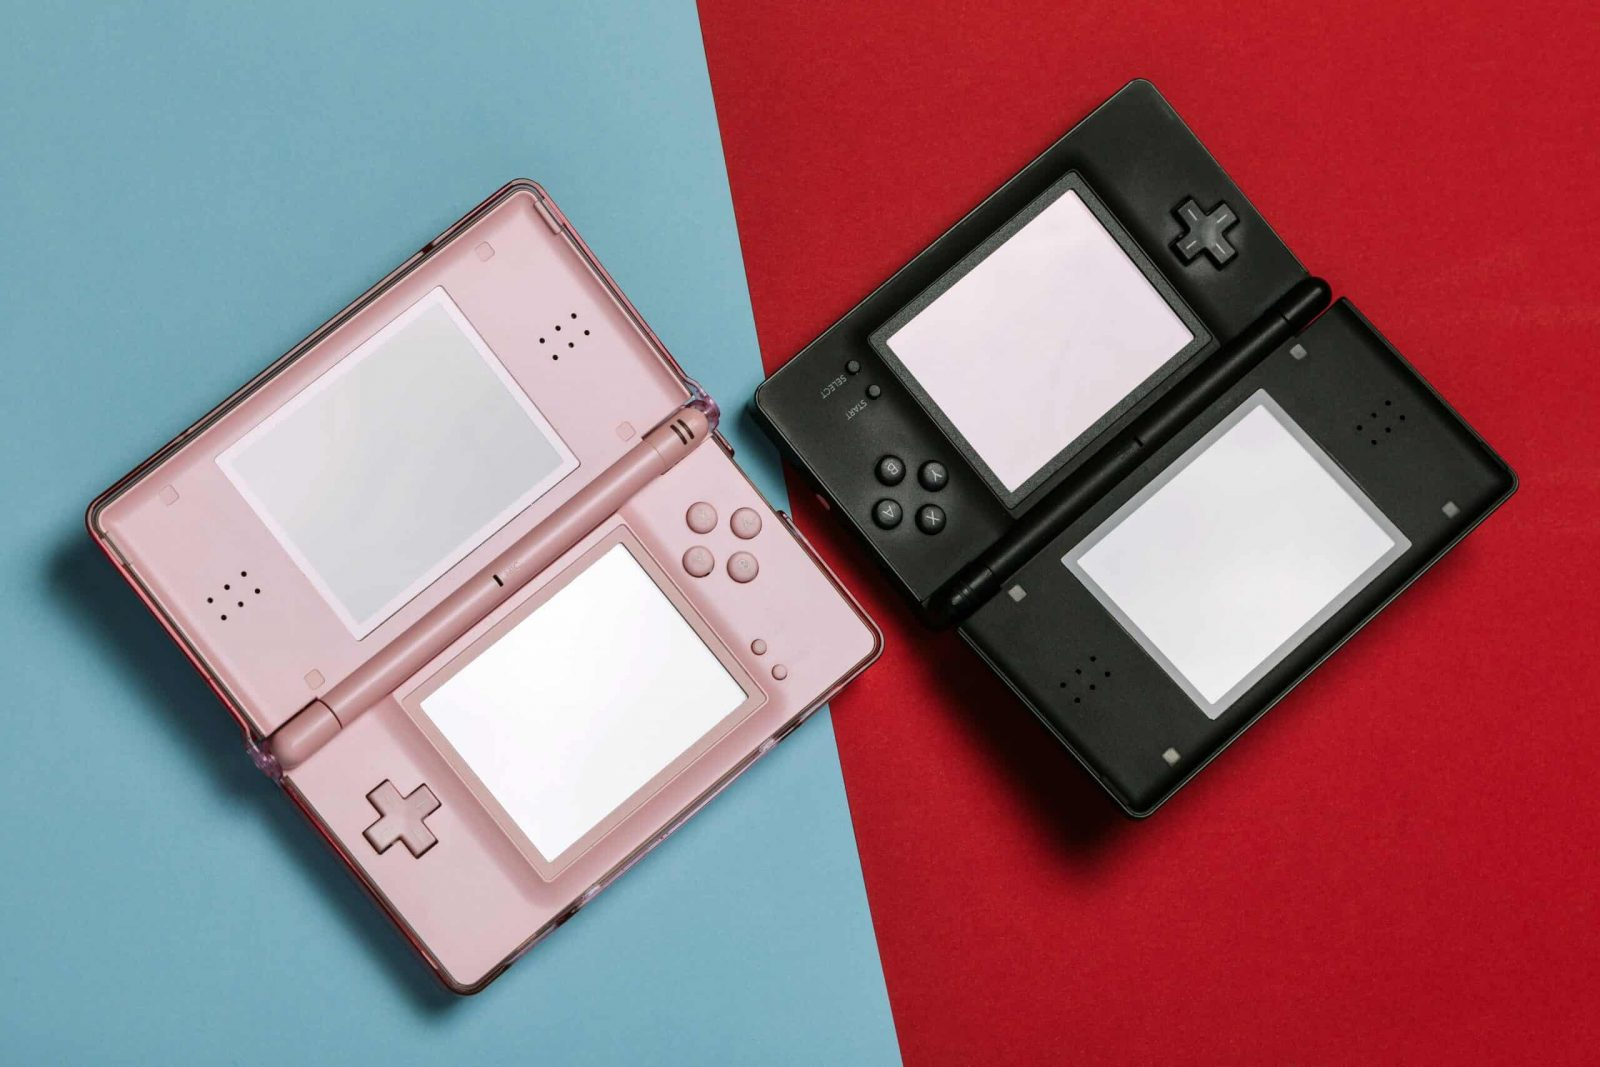 An image showing the nintendo DS